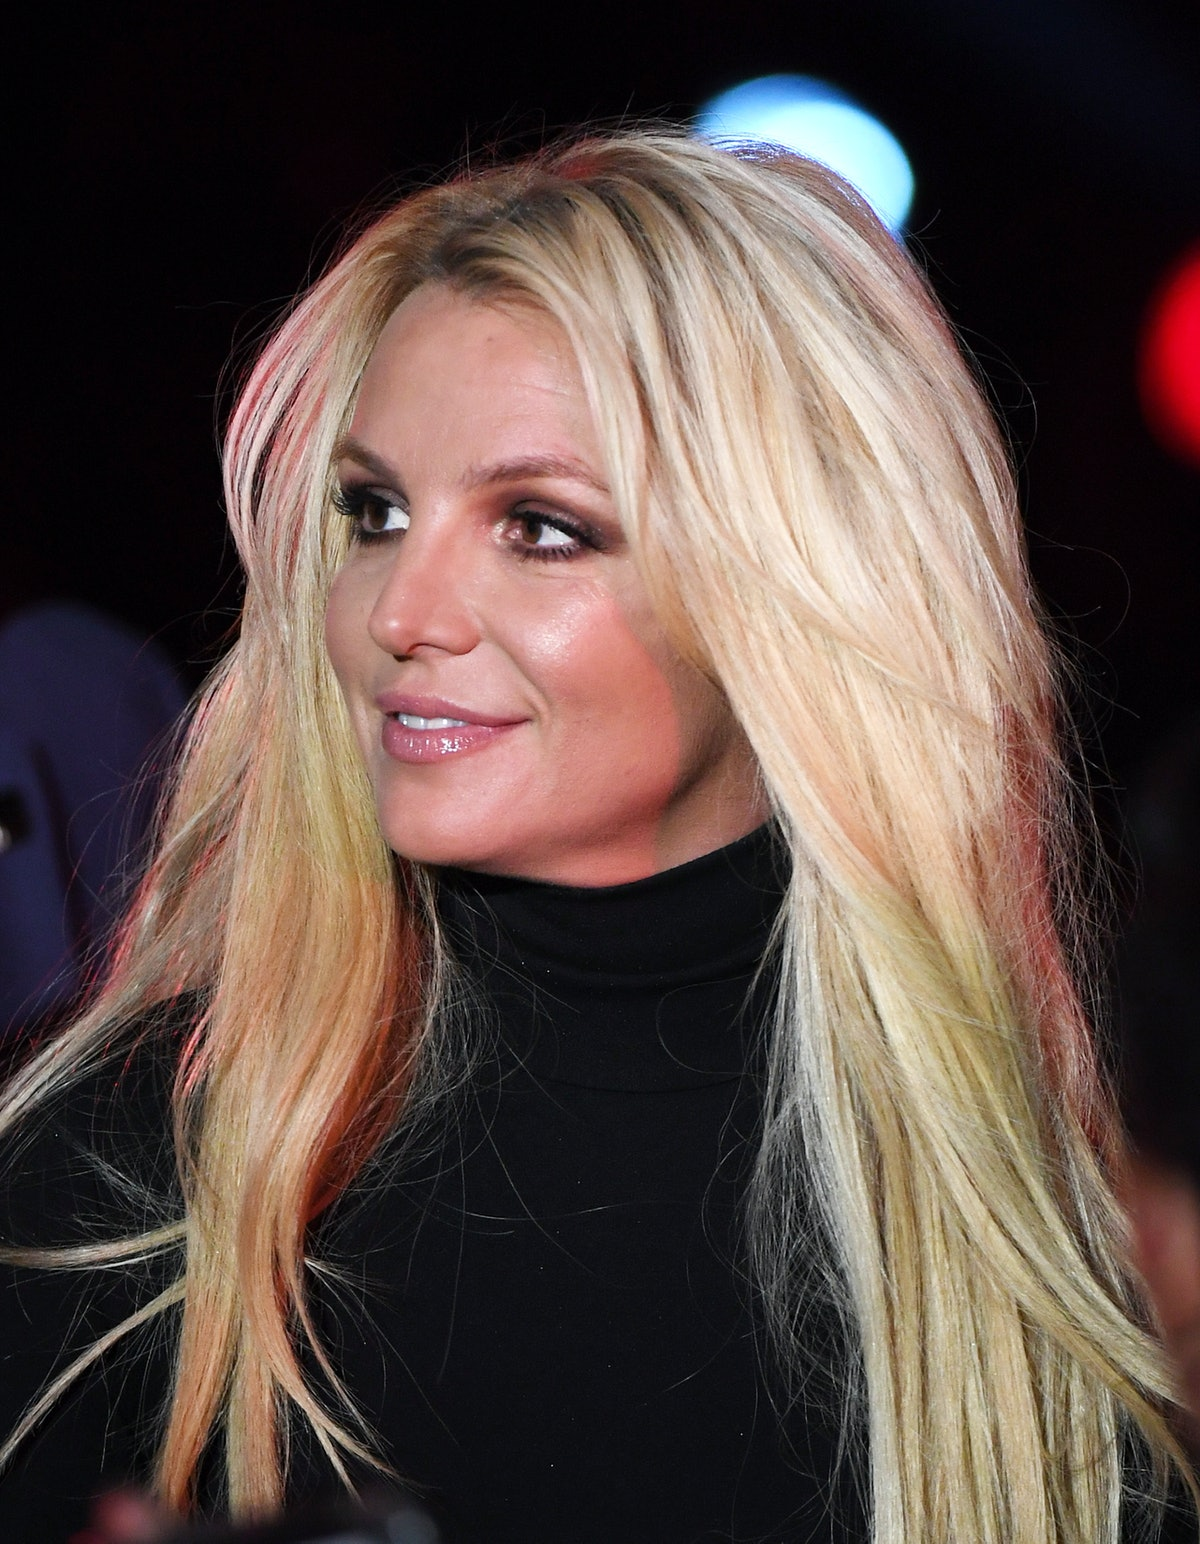 Britney Spears posted an Instagram slamming her father and sister.